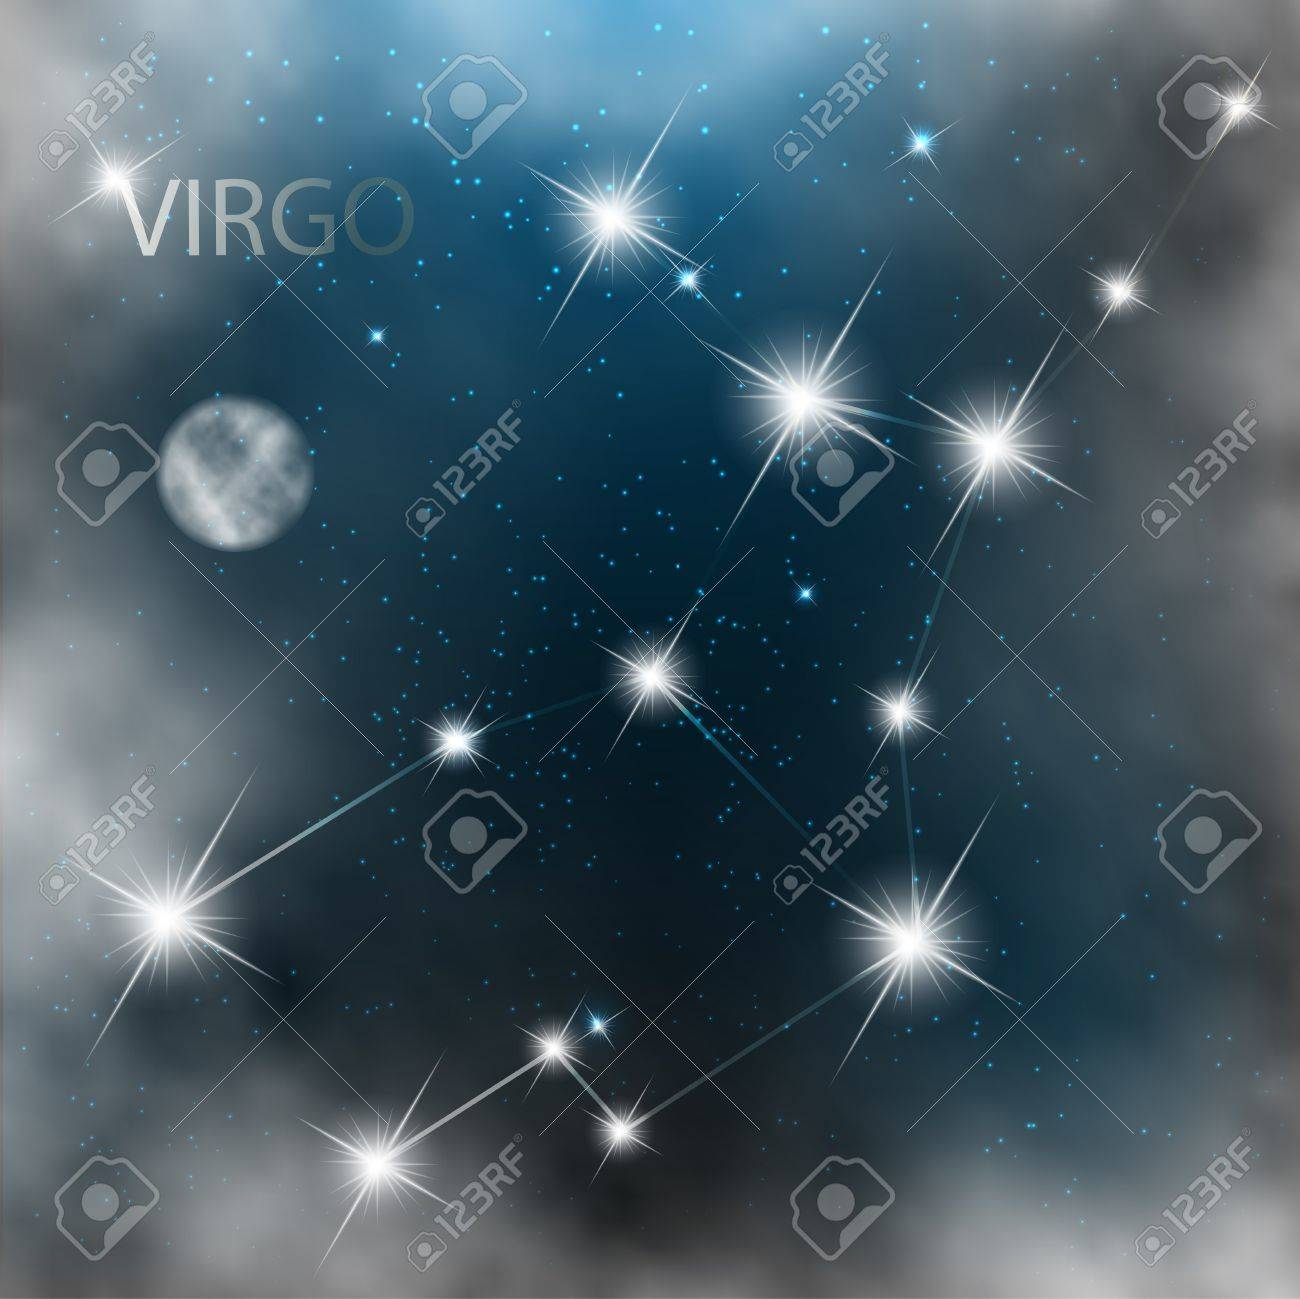 Constellation sign bright stars in cosmos with moon and clouds. Stock Vector - 17711161